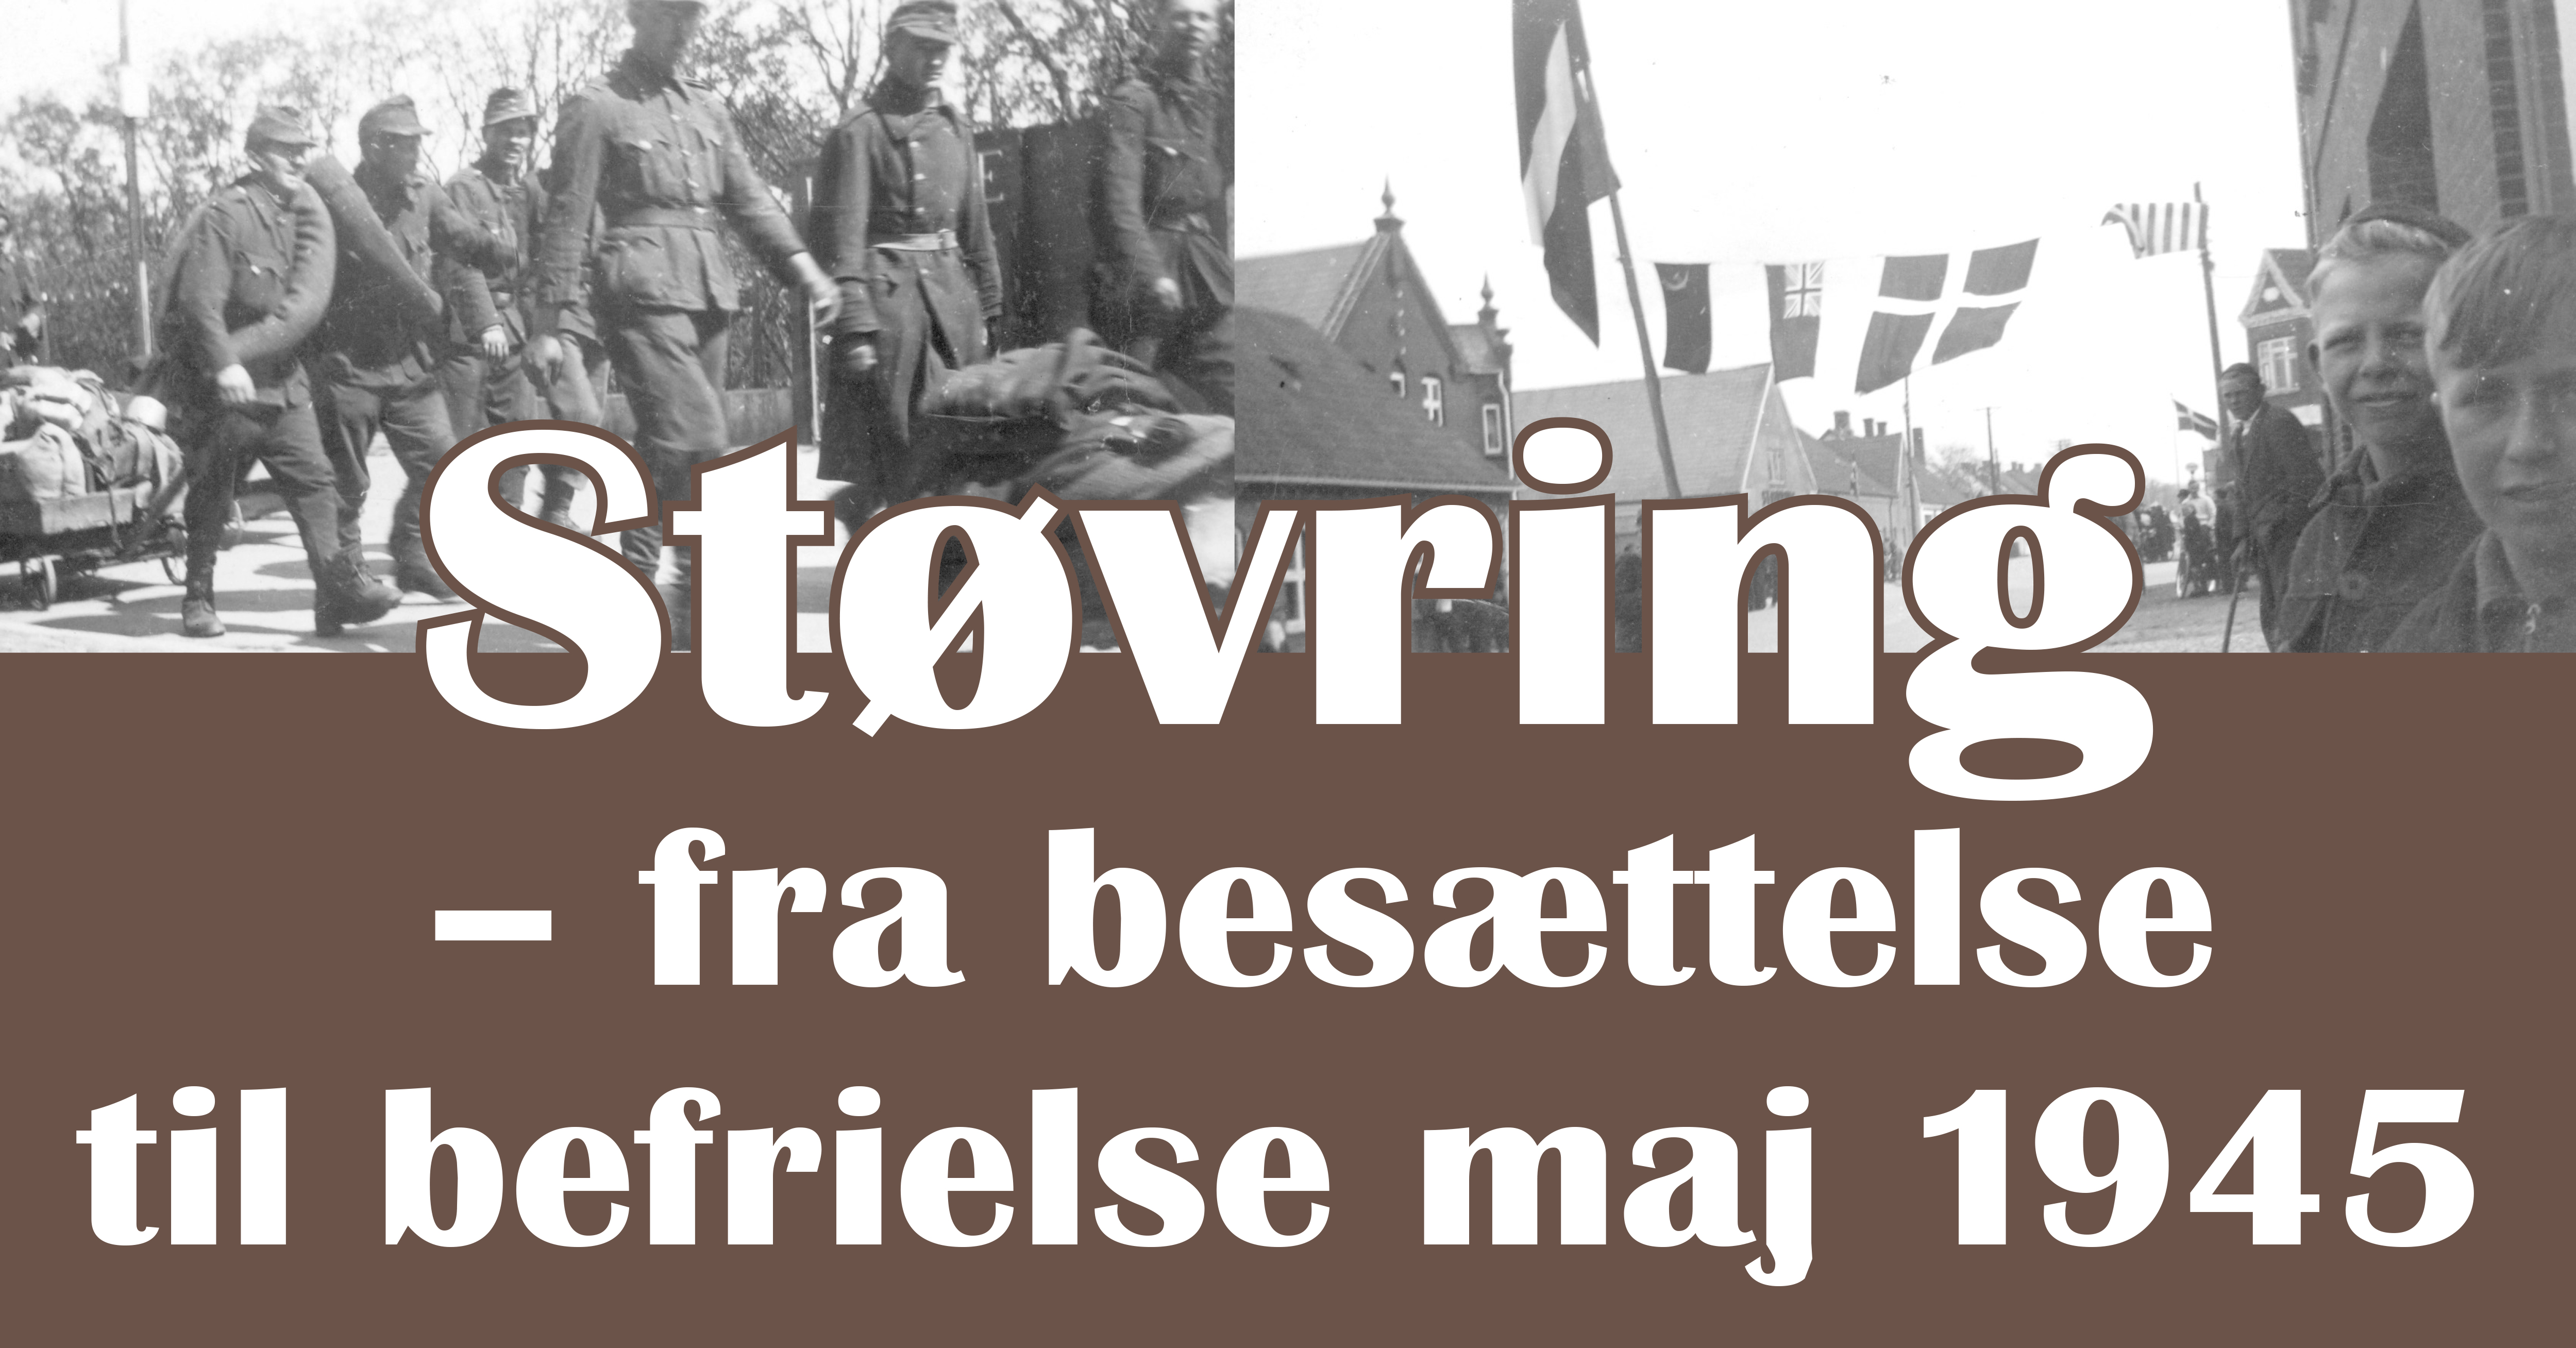 Hestetyveriet april 1945